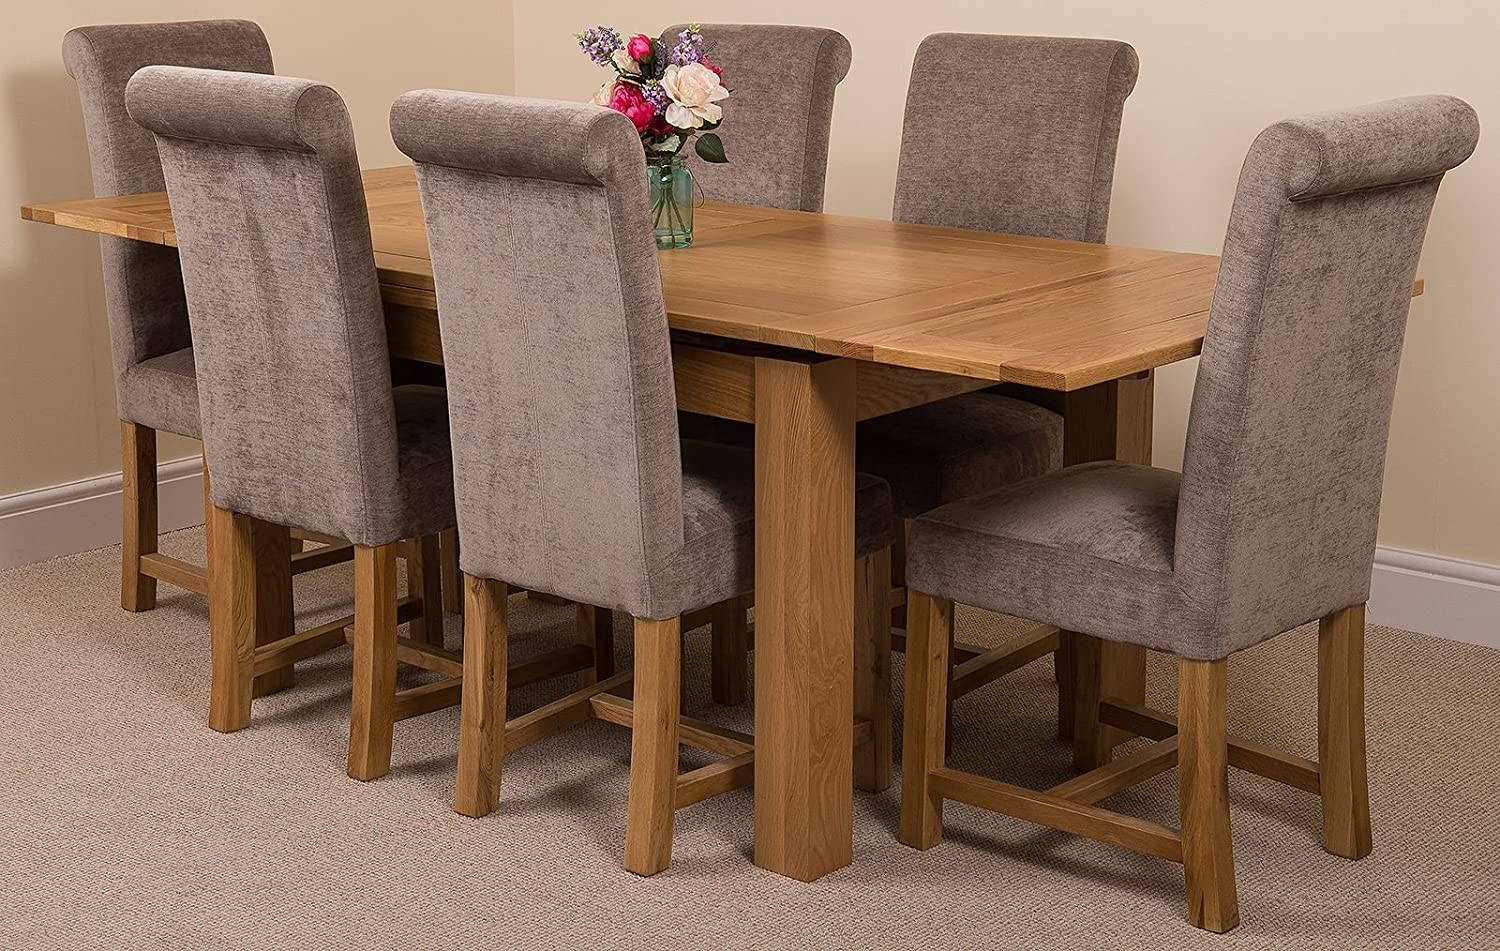 Modern furniture direct richmond medium extending solid oak dining set table 6 grey fabric chairs amazon co uk kitchen home